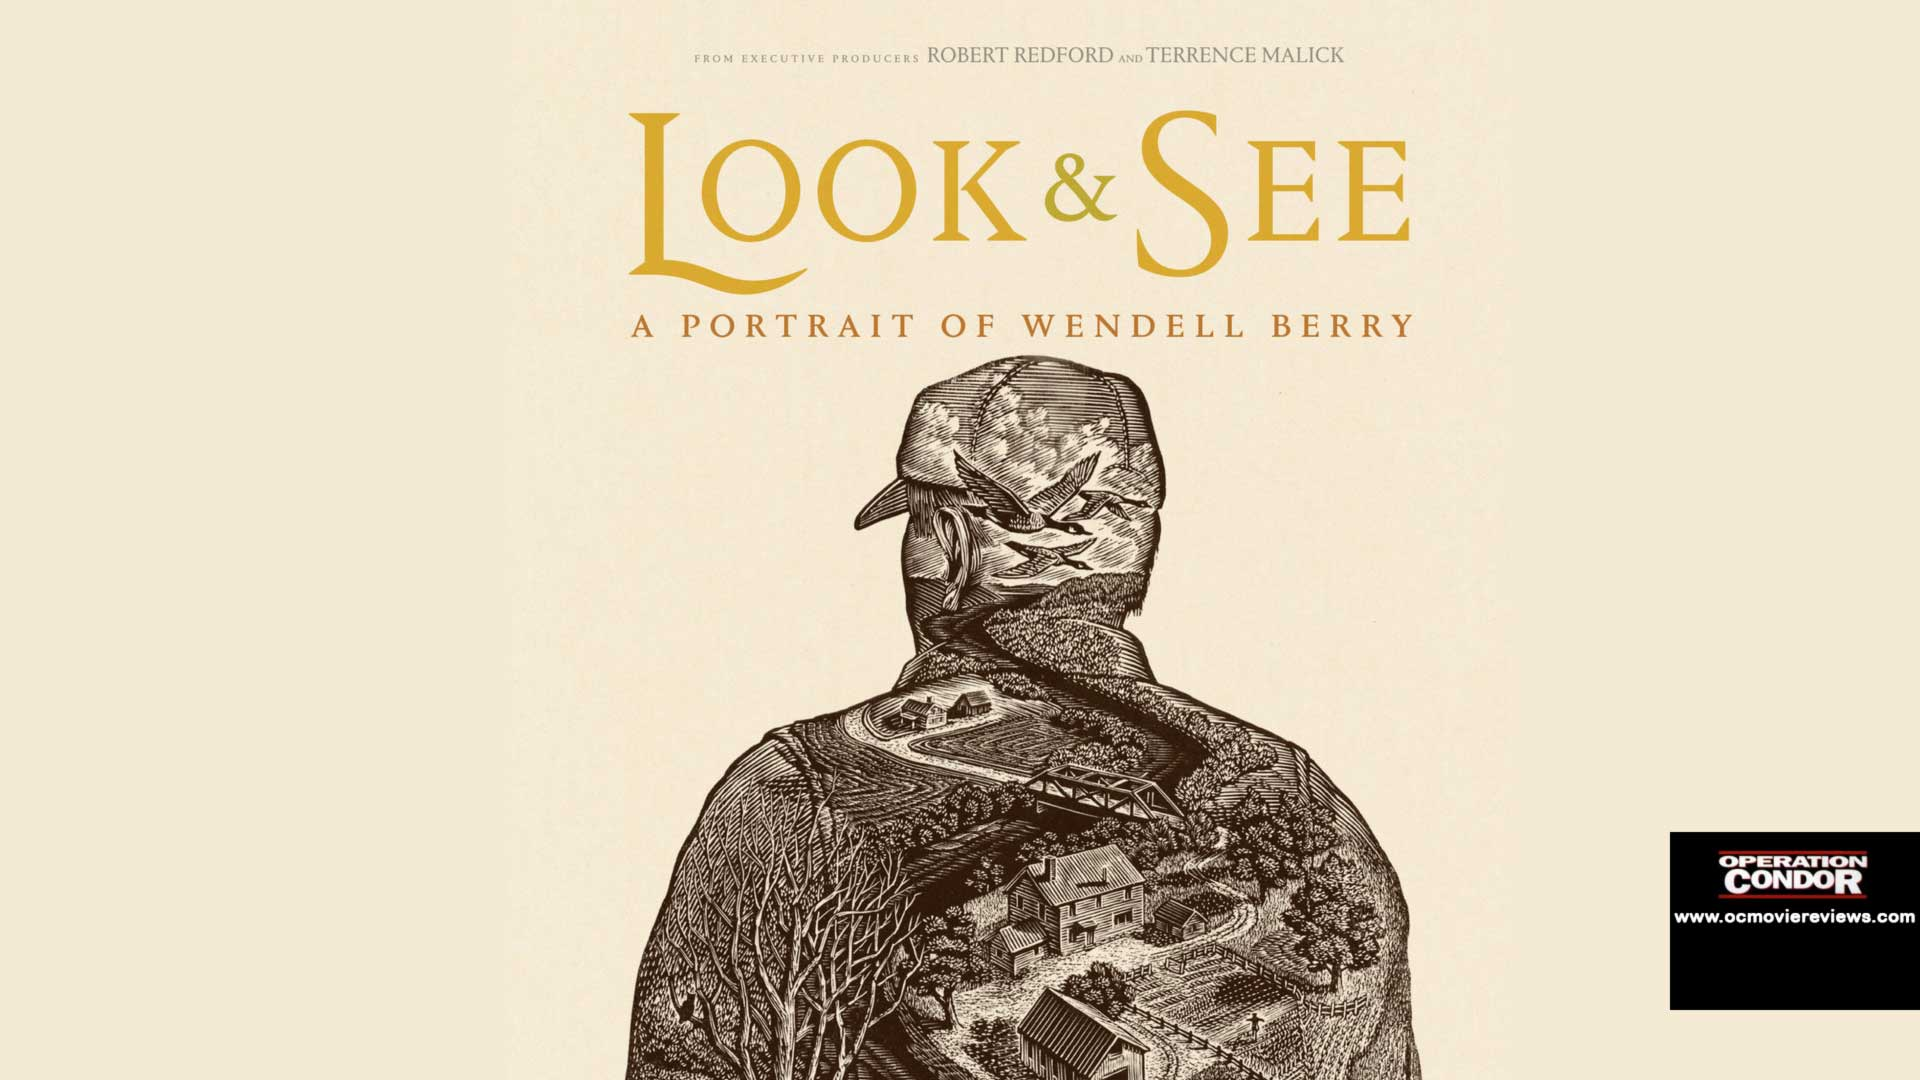 Look And See A Portrait Of Wendell Berry Review - OC Movie Reviews - Movie Reviews, Movie News, Documentary Reviews, Short Films, Short Film Reviews, Trailers, Movie Trailers, Interviews, film reviews, film news, hollywood, indie films, documentaries